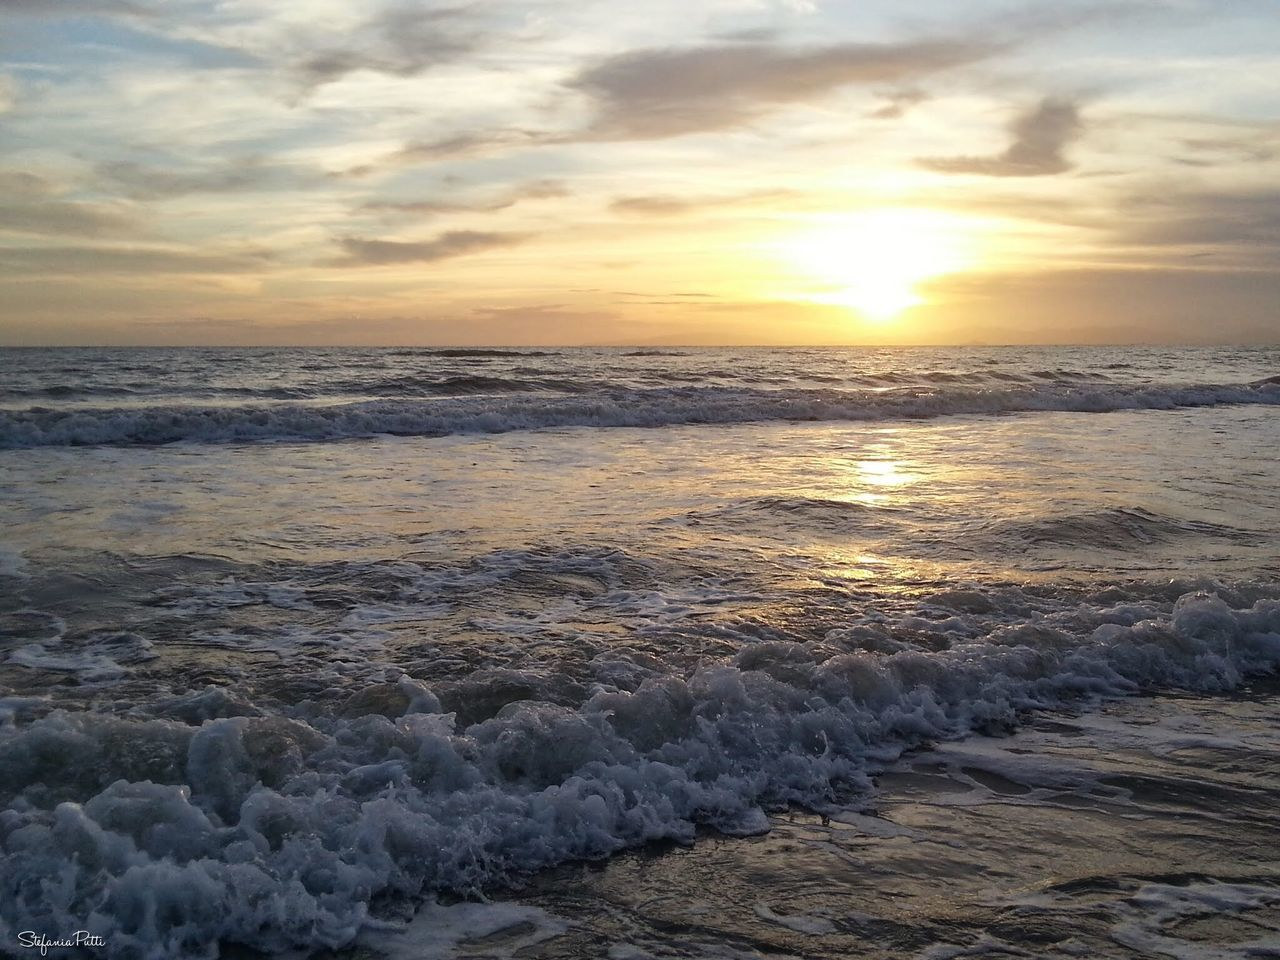 sunset, sea, beauty in nature, nature, beach, wave, water, scenics, shore, sun, sky, tranquility, tranquil scene, horizon over water, no people, outdoors, sand, cloud - sky, sunlight, motion, day